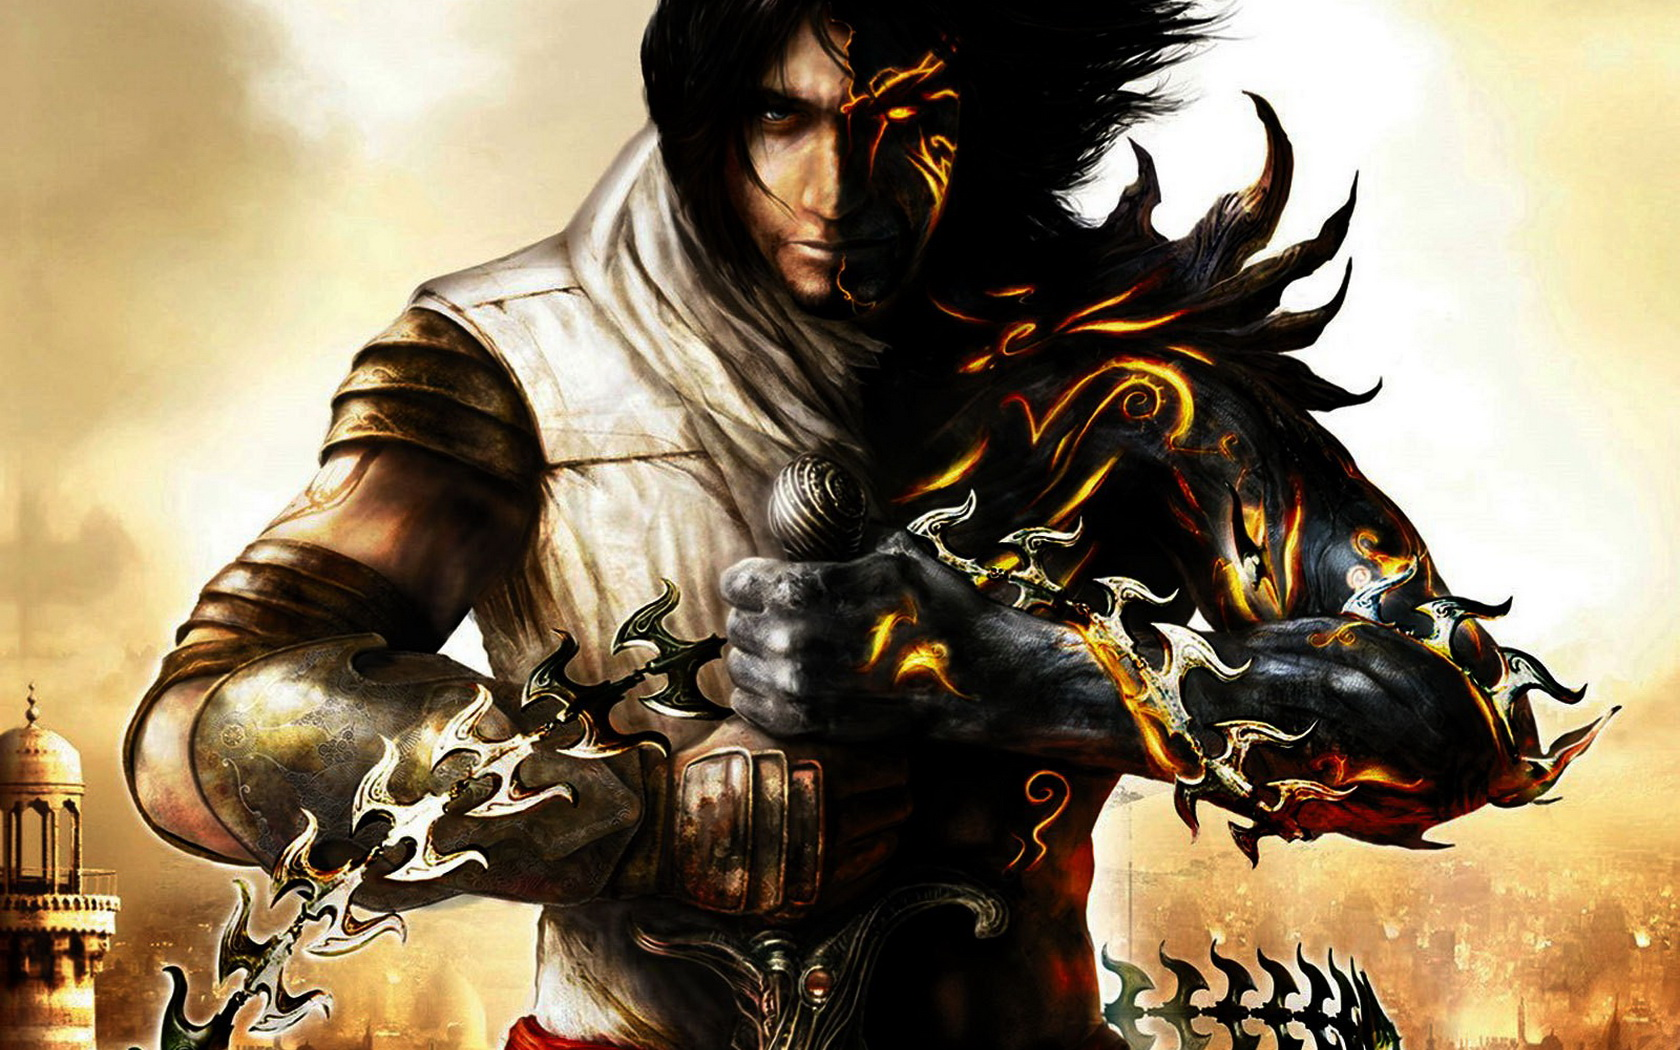 Video Game - Prince Of Persia: The Two Thrones  - Prince Of Persia Bakgrund